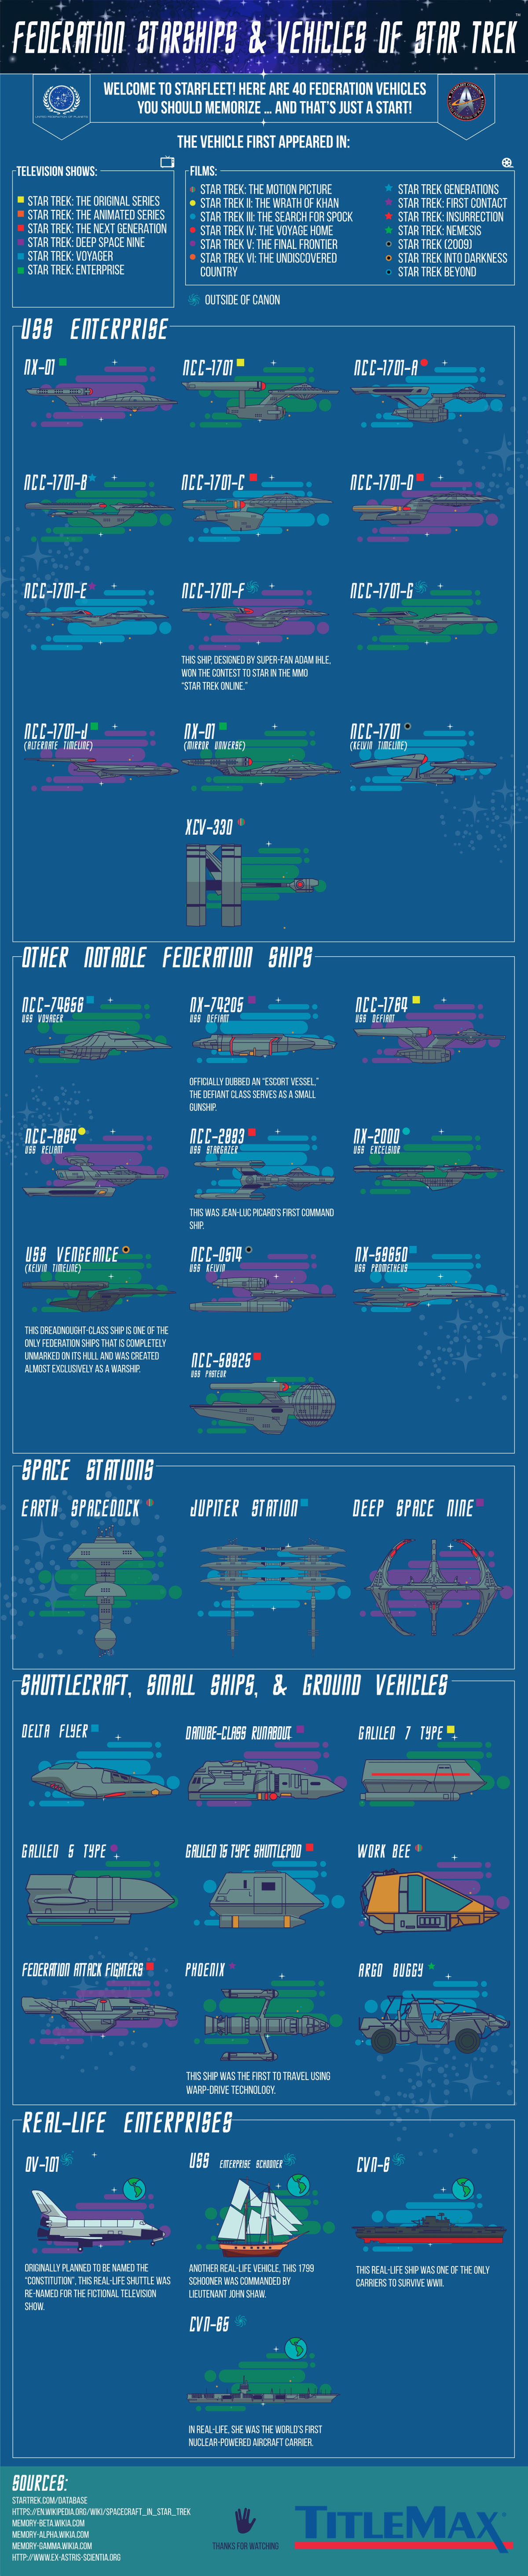 Federation Starships & Vehicles of Star Trek